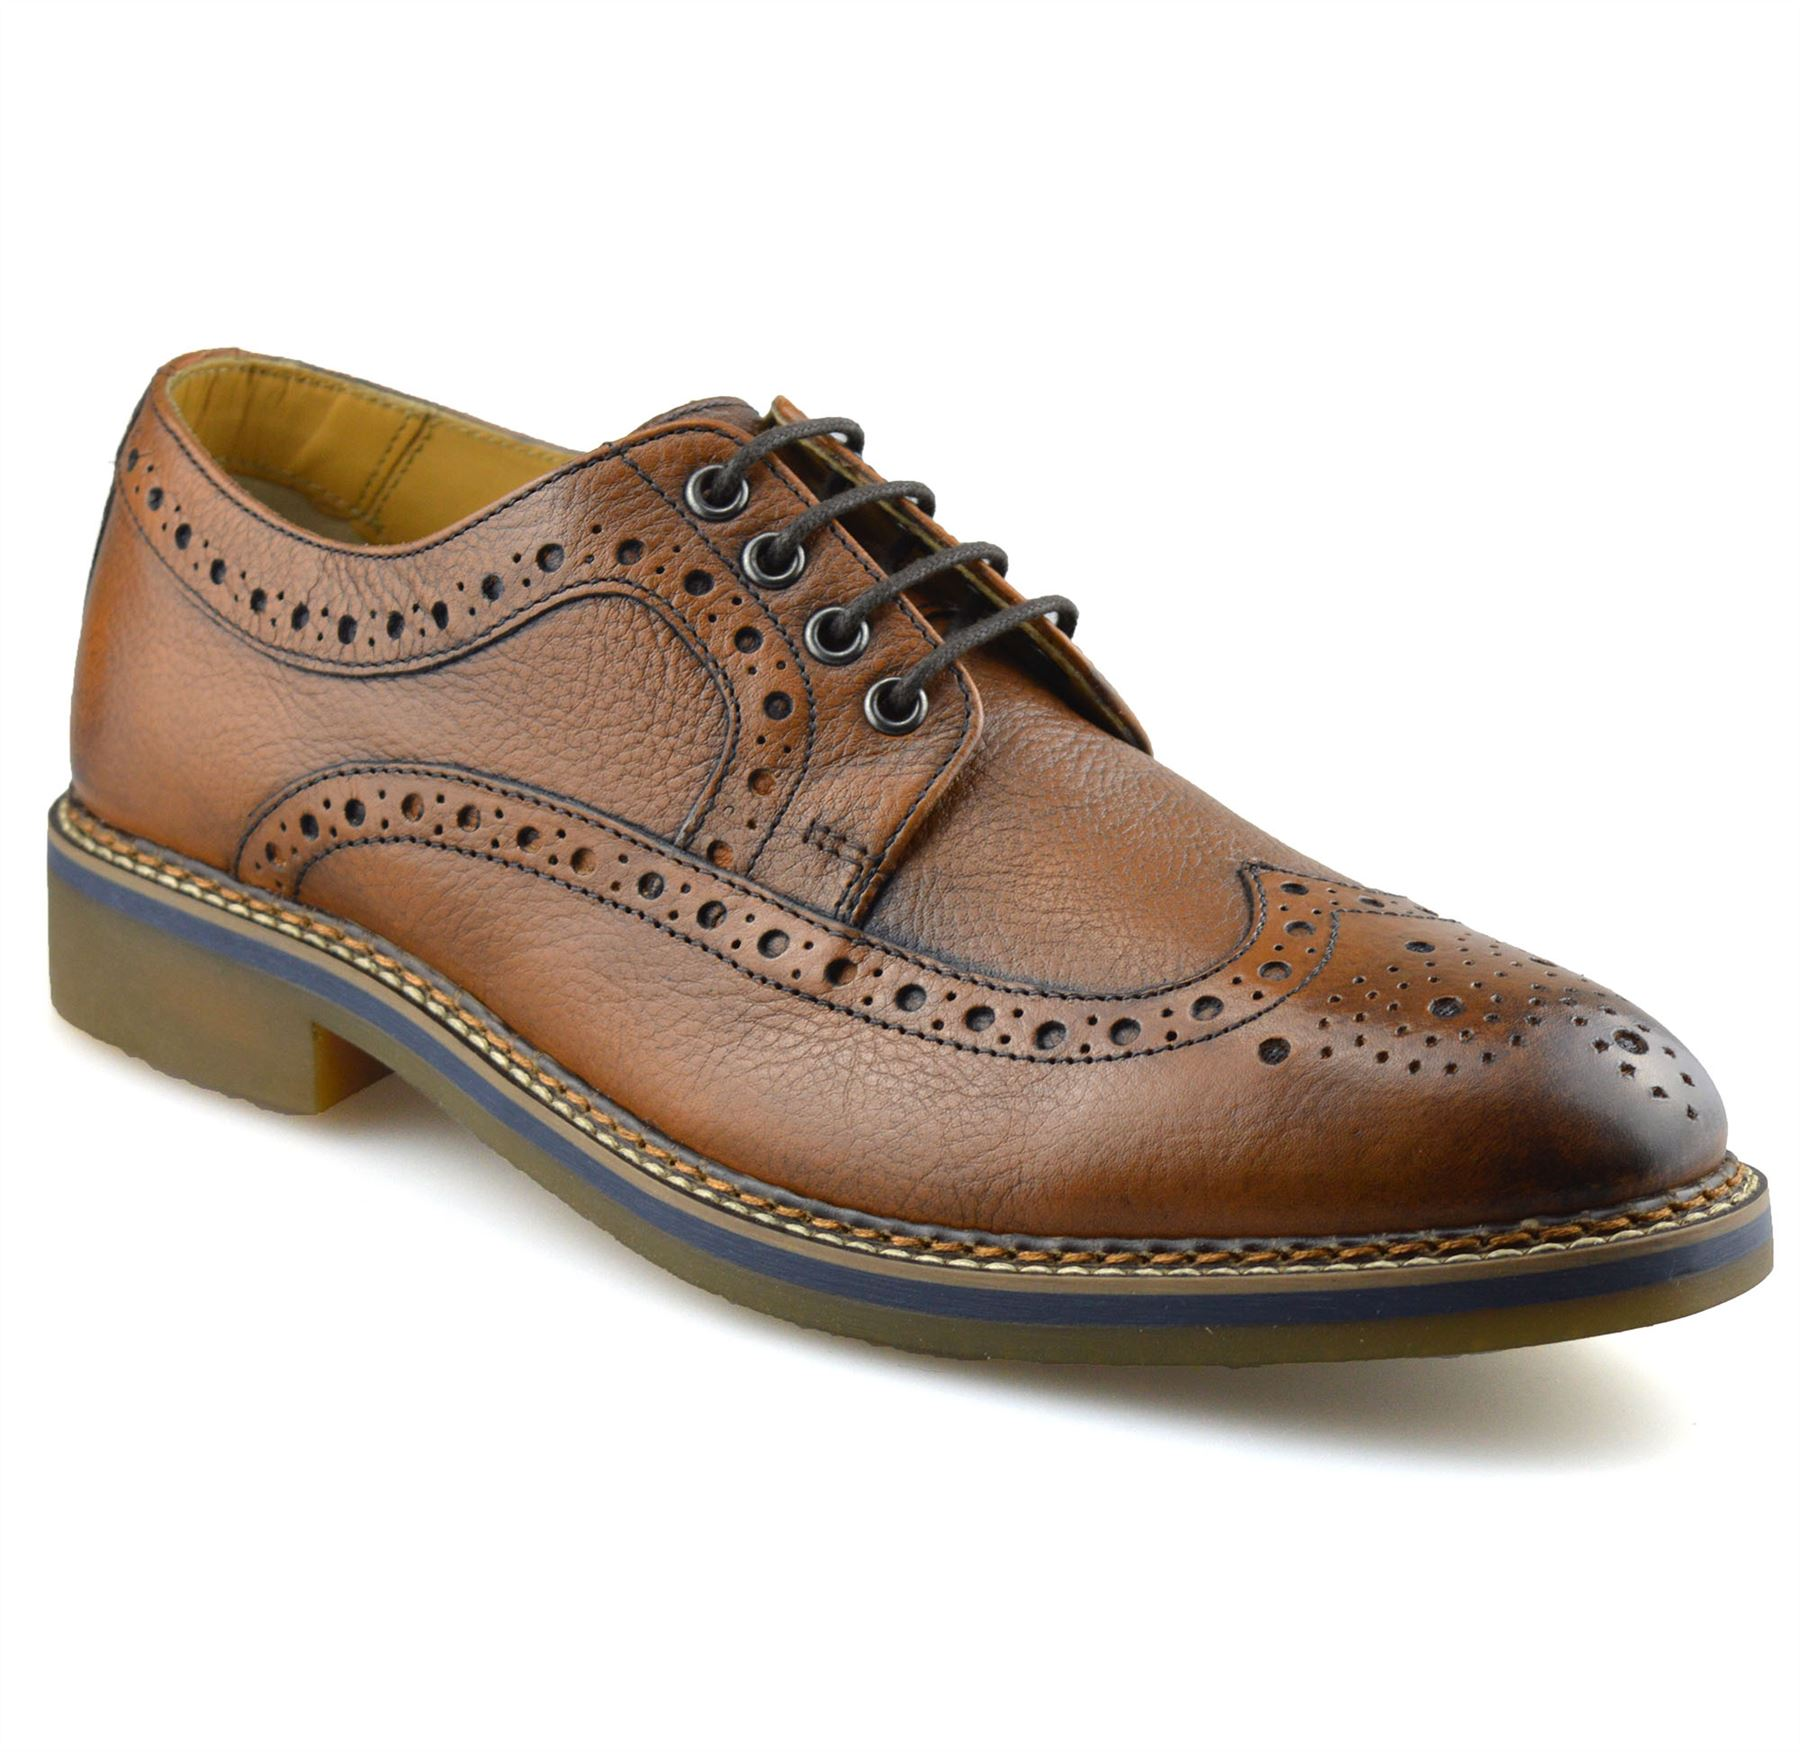 Mens-New-Ikon-Leather-Casual-Smart-Lace-Up-Oxford-Brogues-Work-Office-Shoes-Size thumbnail 13